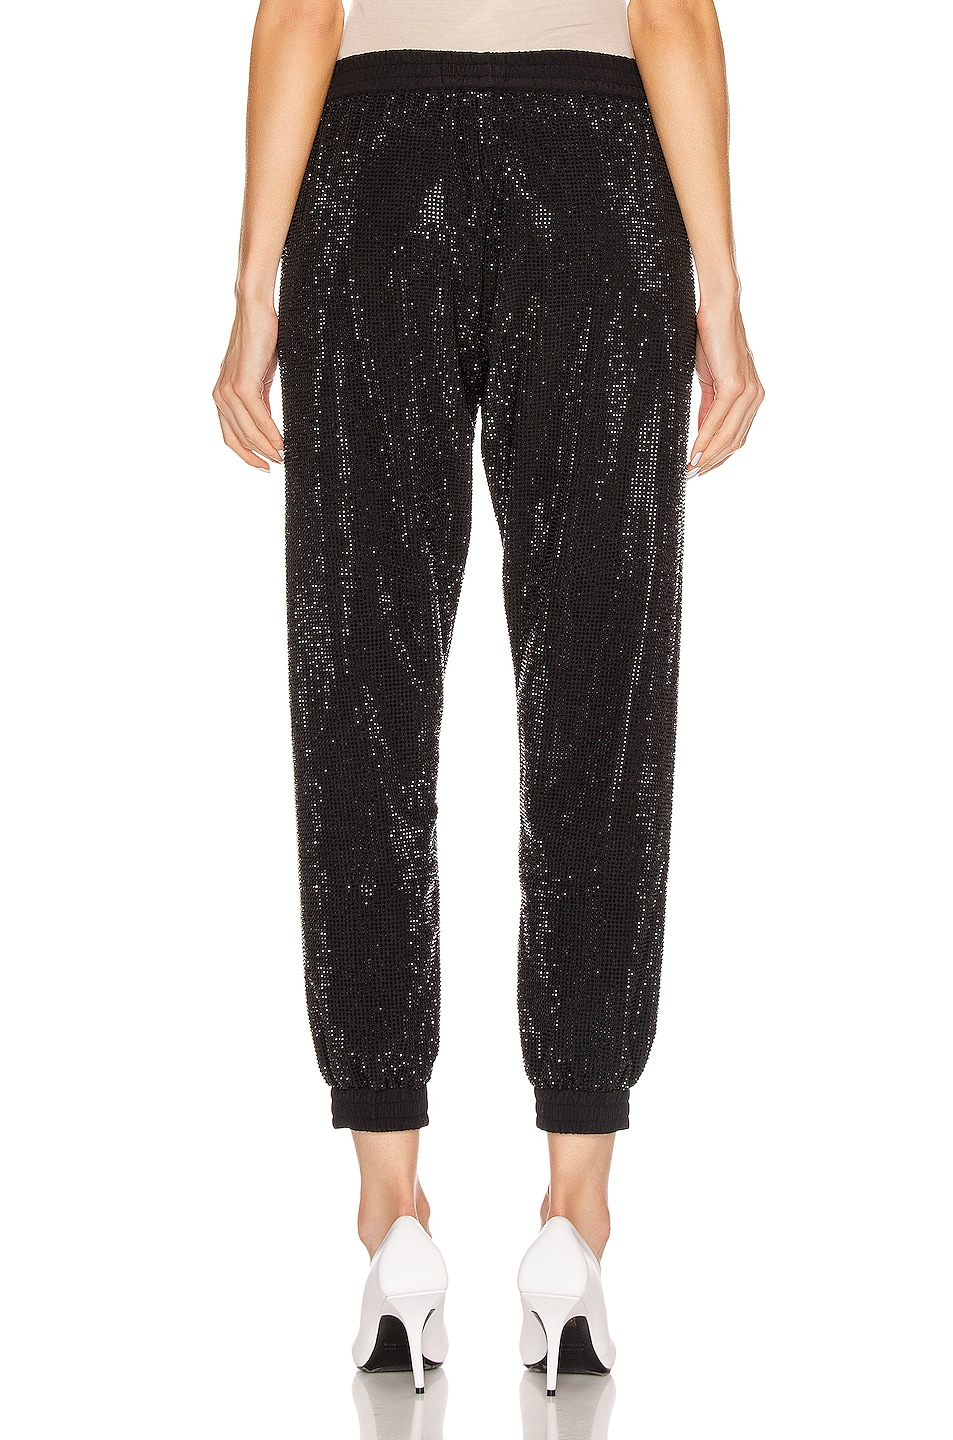 Image 3 of RtA Finn Pant in Starry Eyed